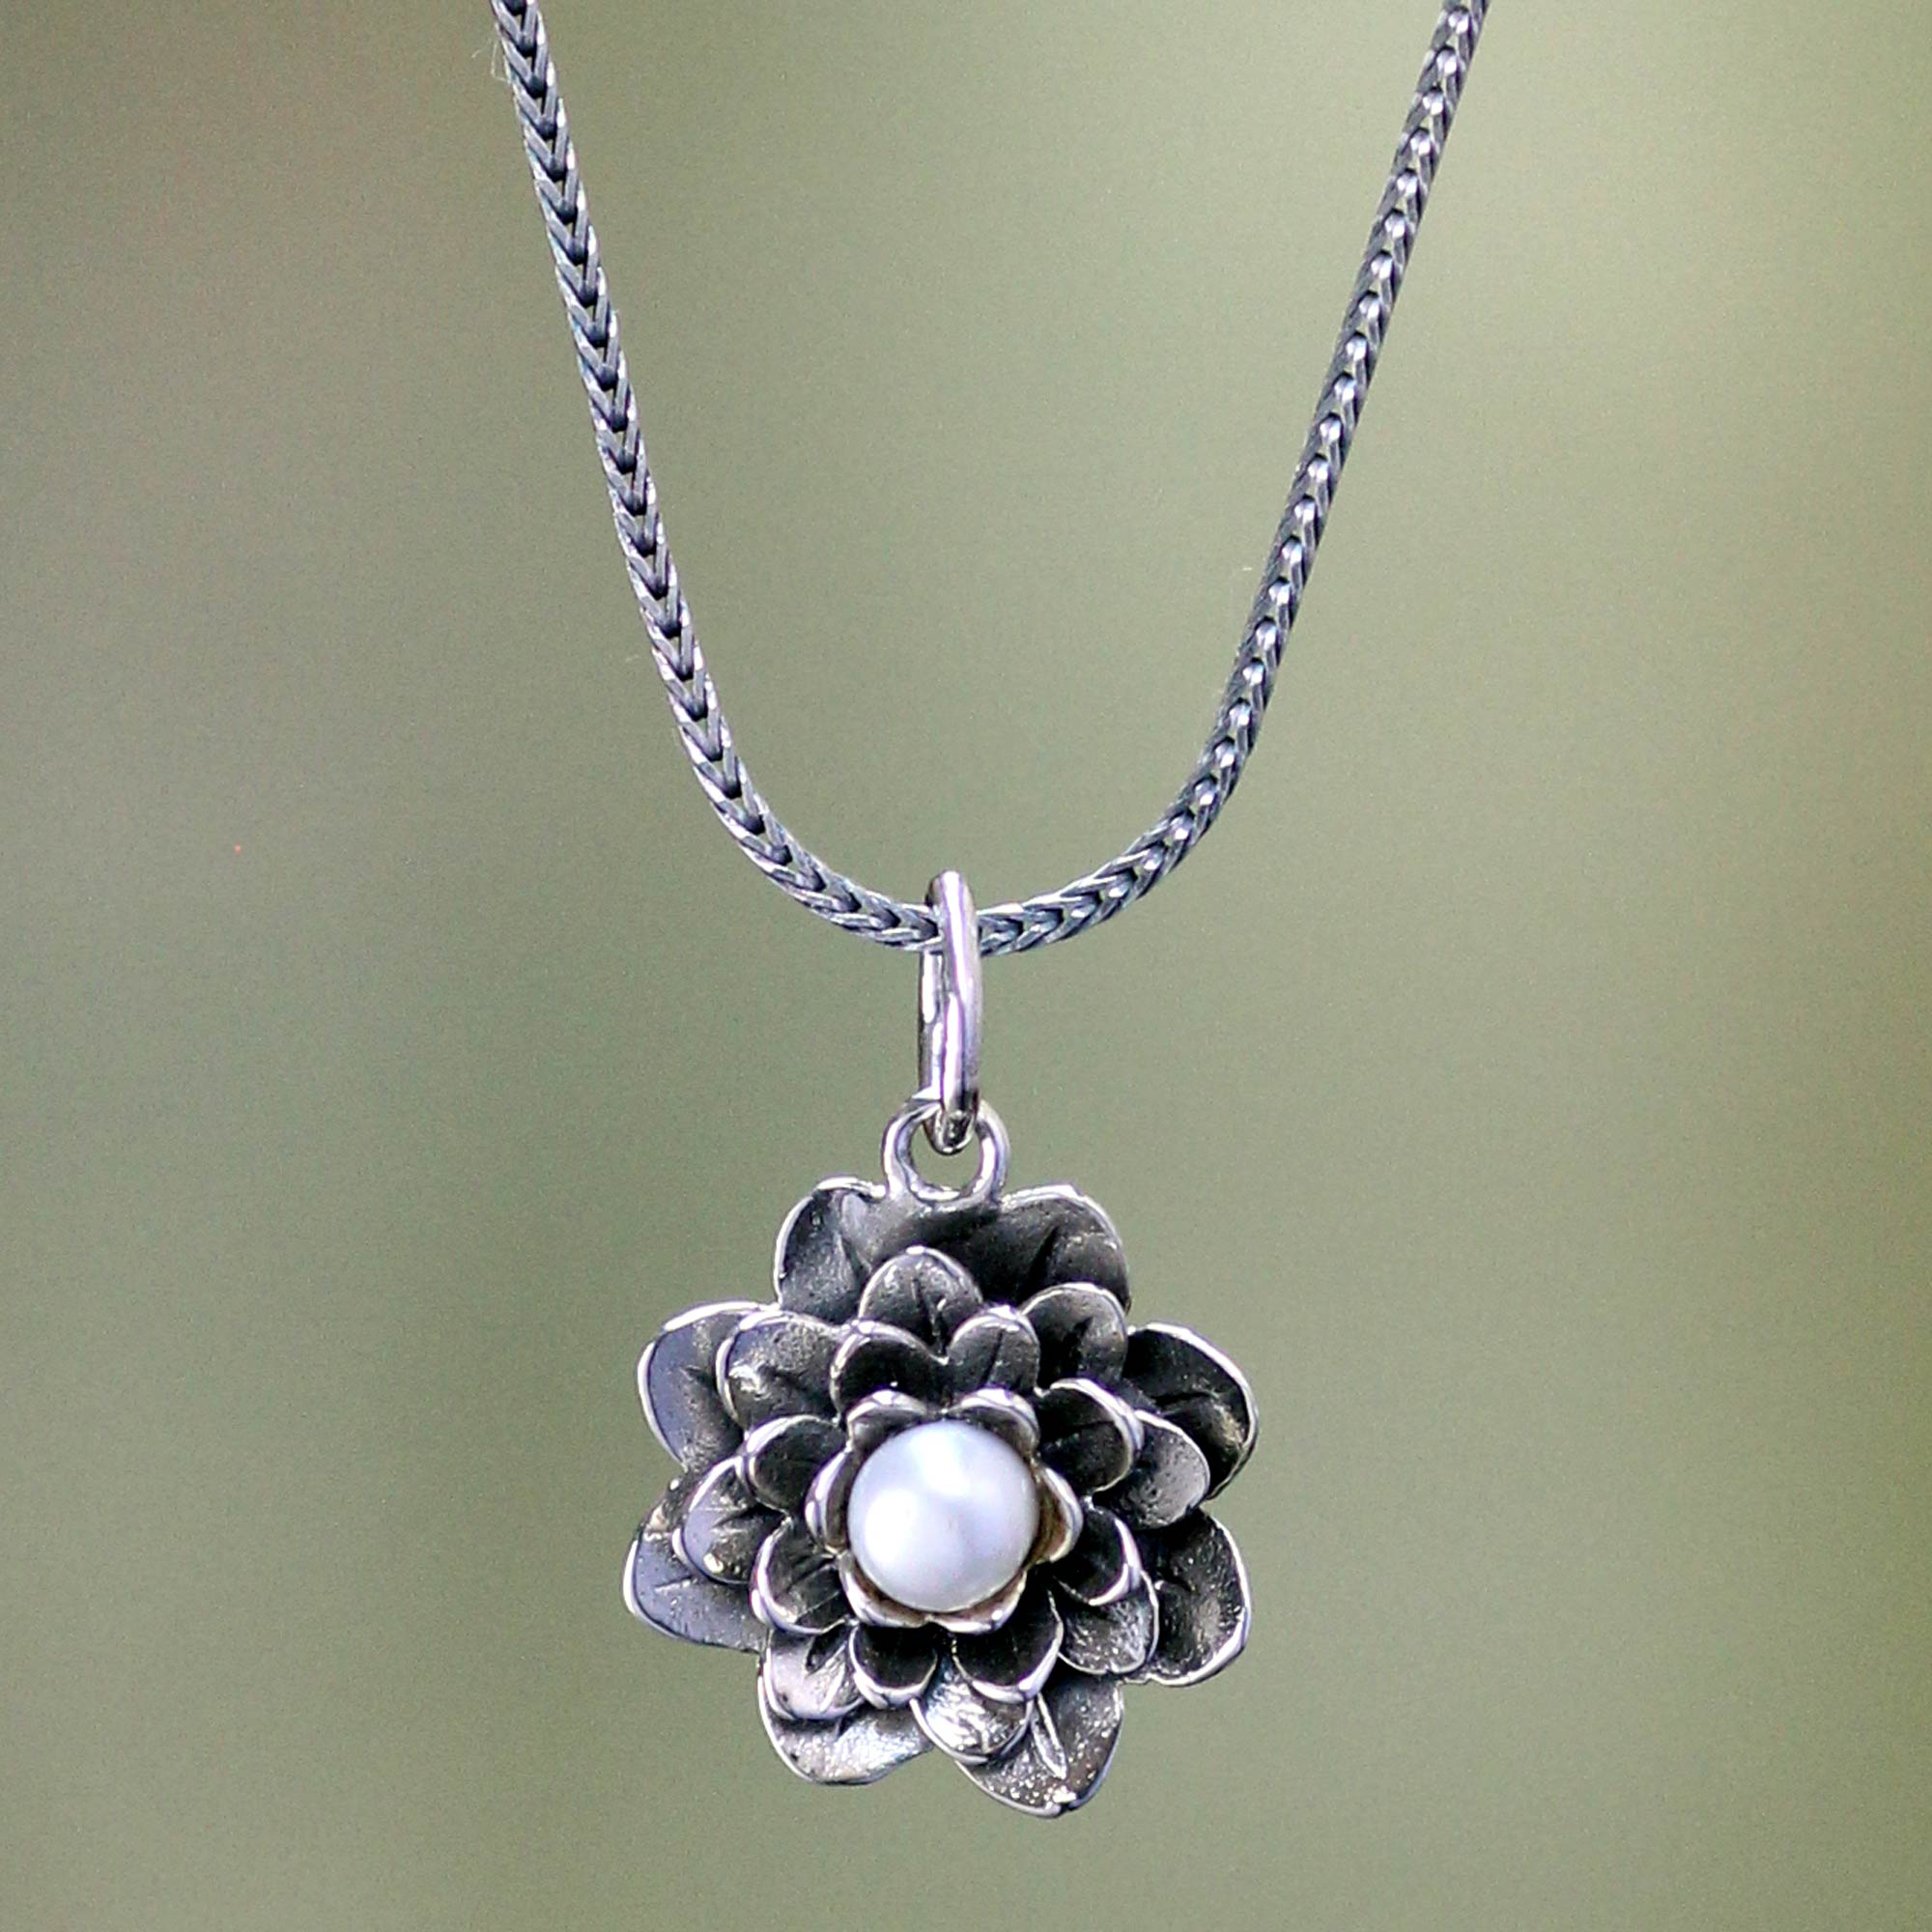 necklace sterling pendant out blossom bling lotus silver srn cut flower jewelry